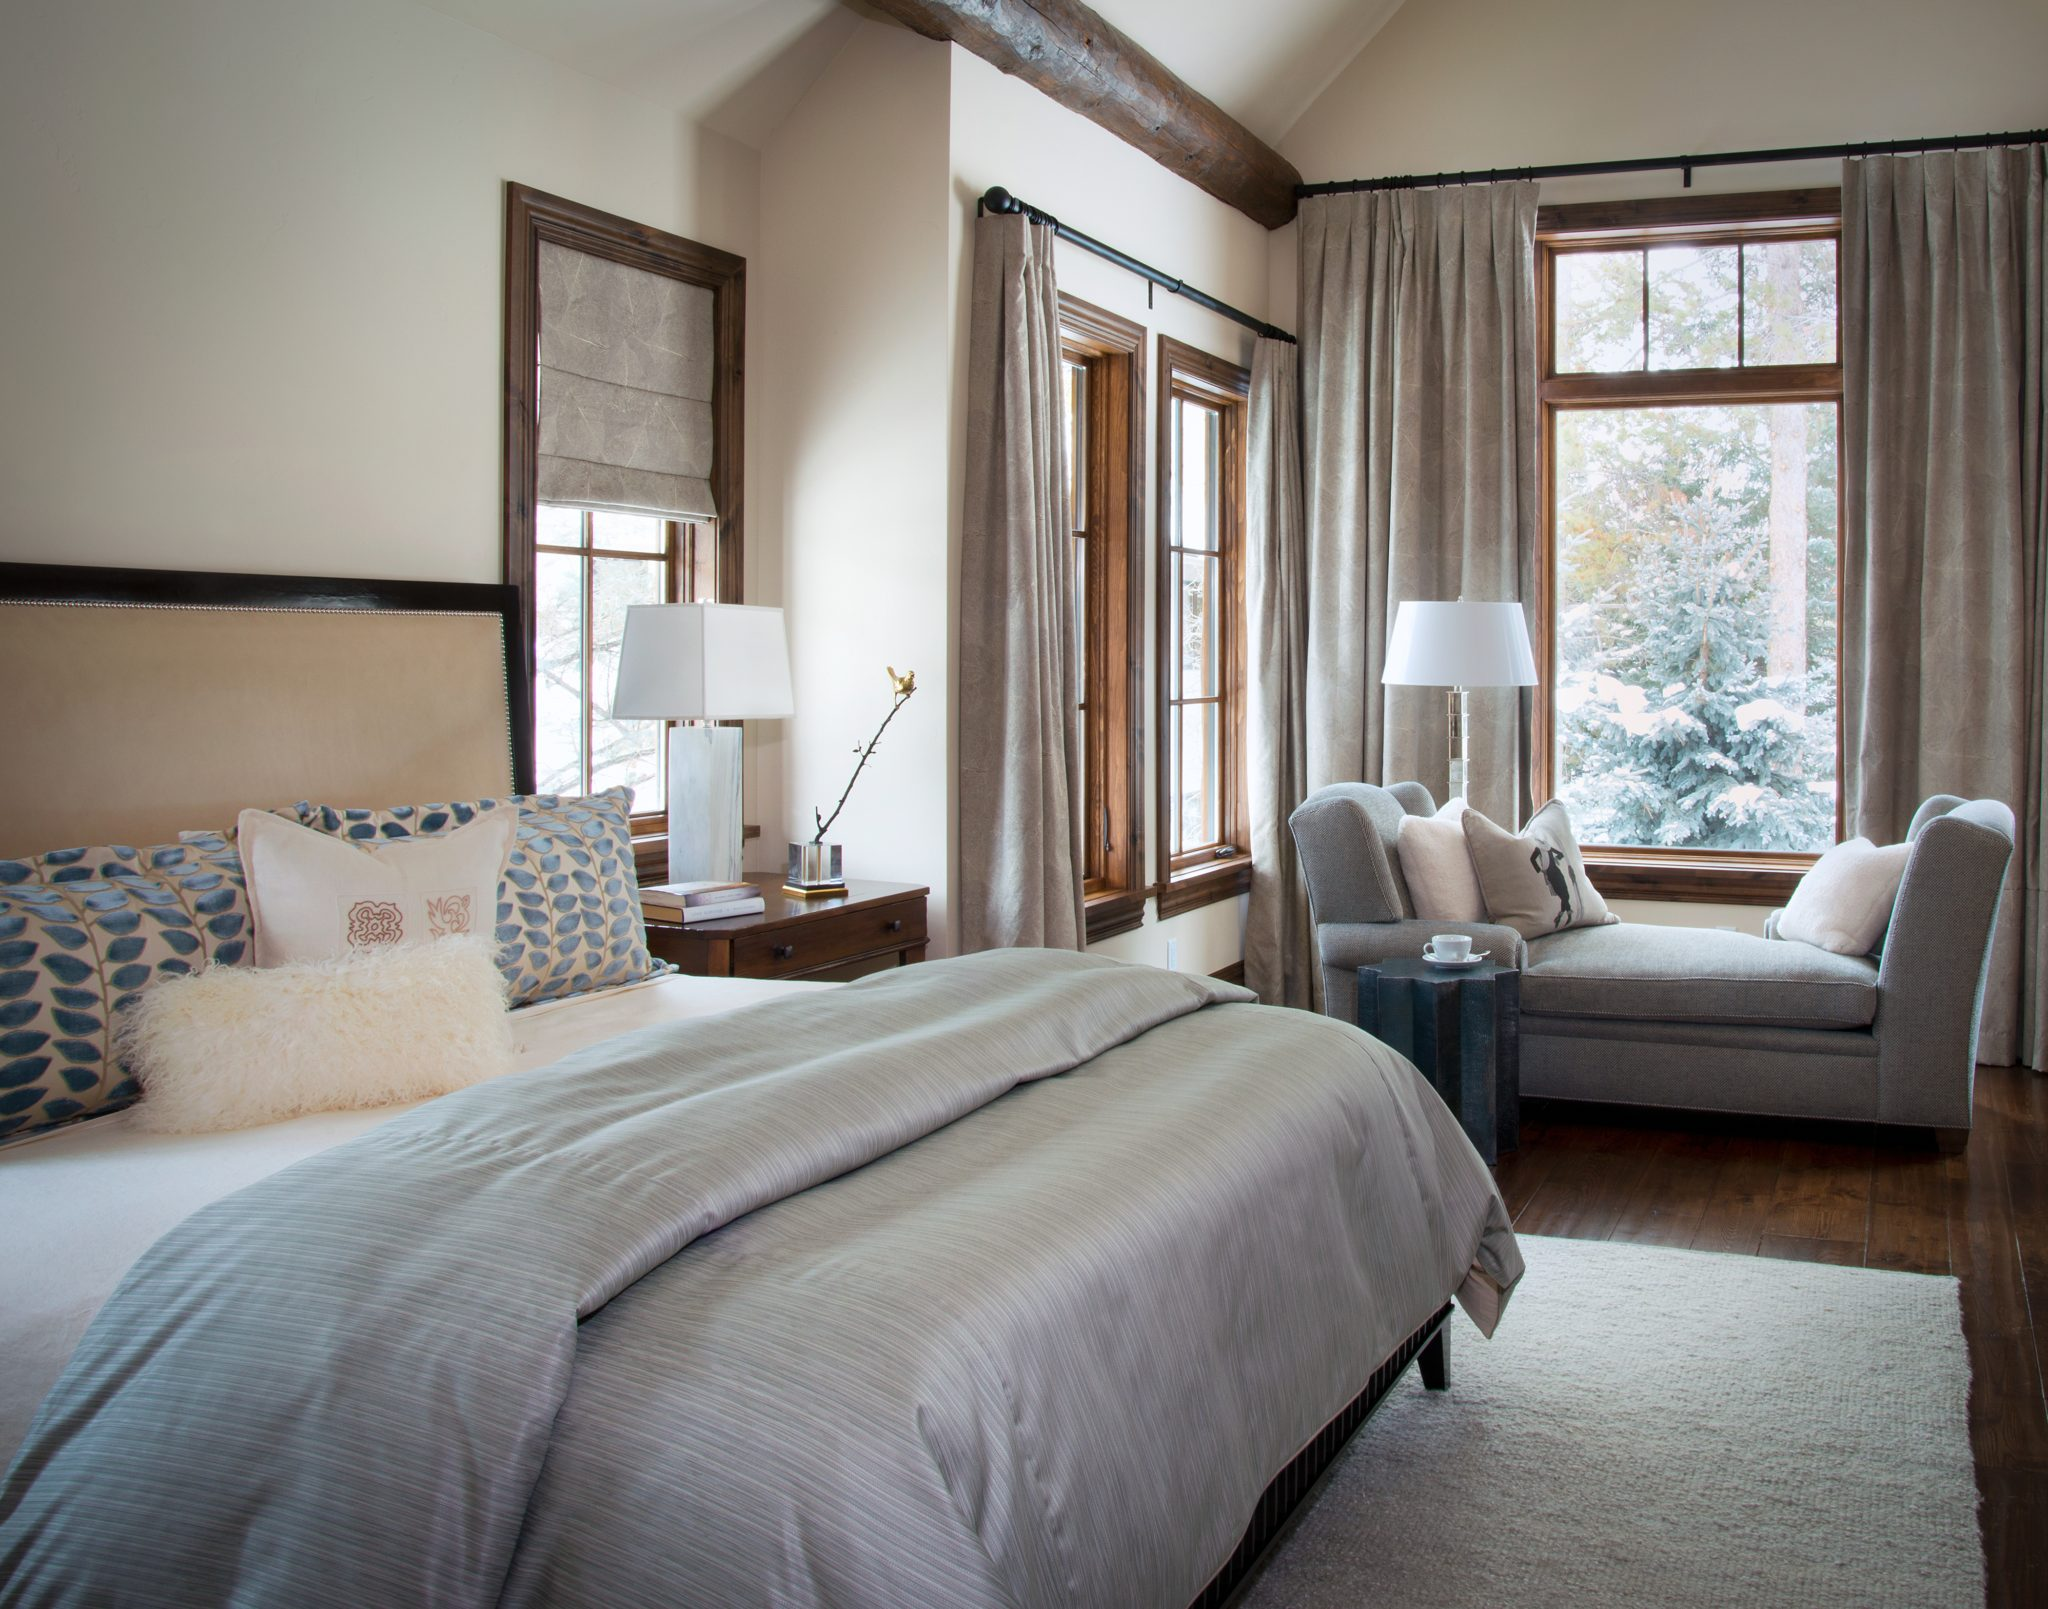 Vail, Colorado, property by Slifer Designs